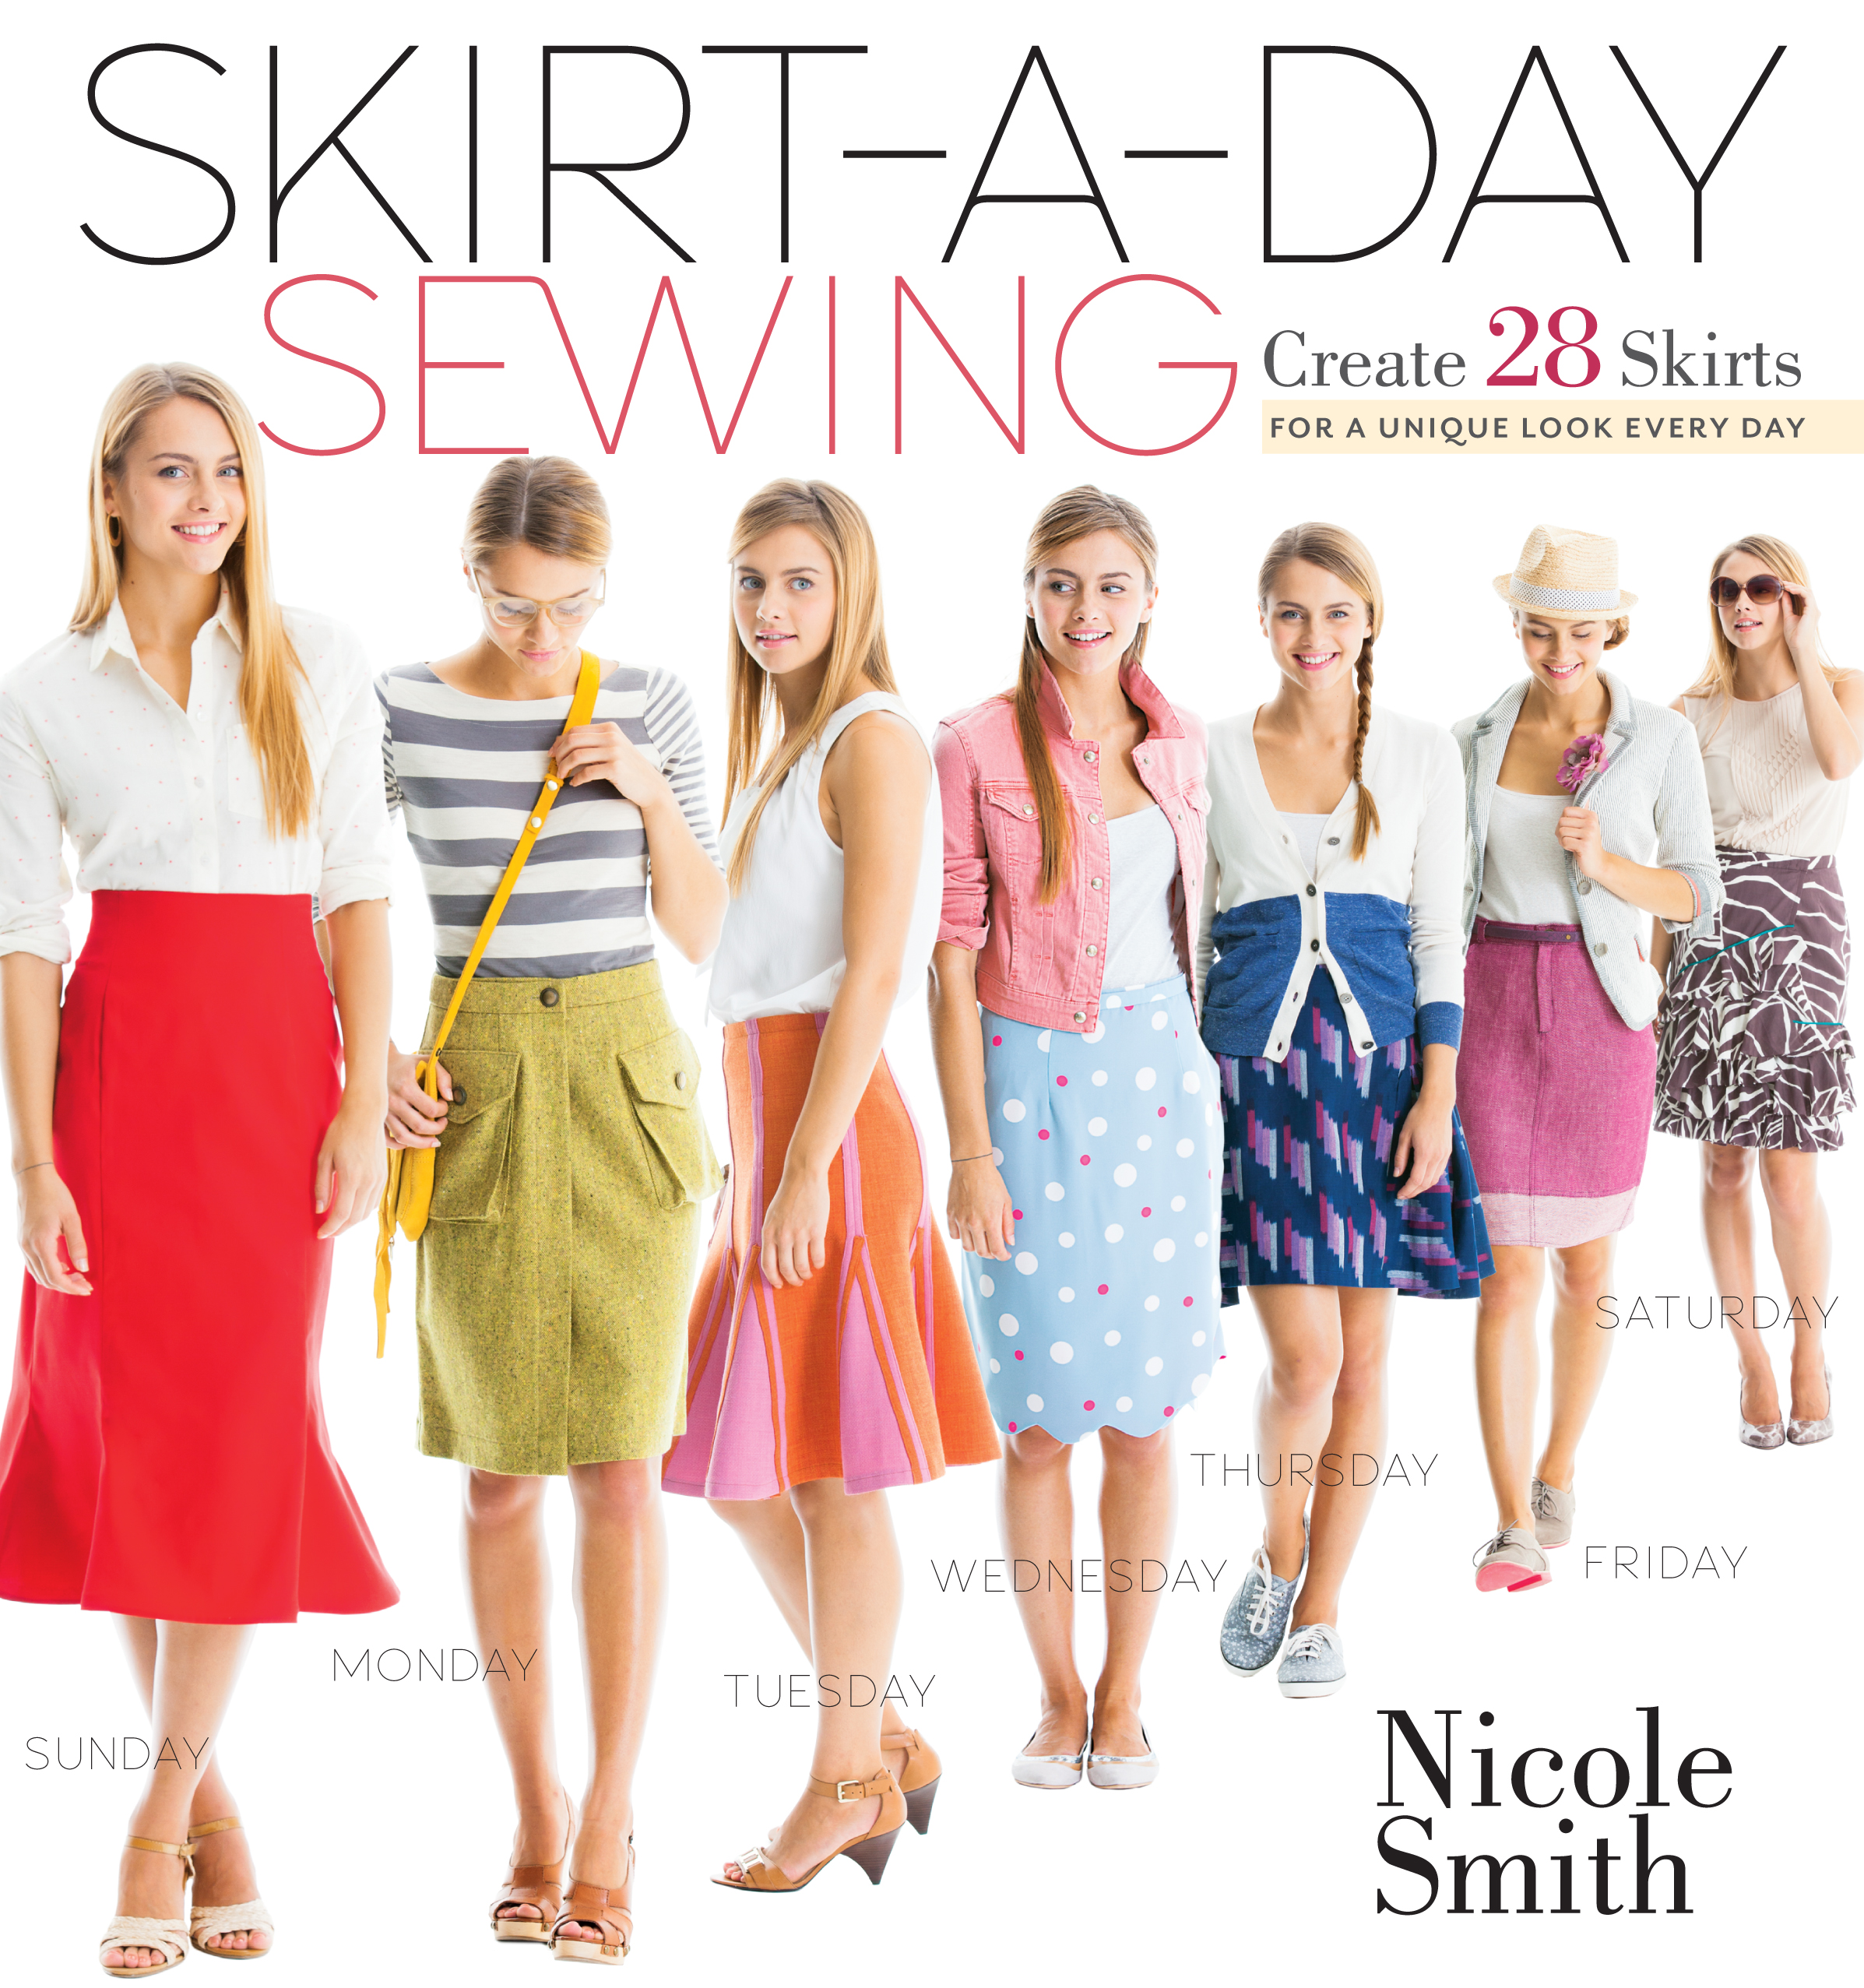 Skirt-a-Day Sewing Create 28 Skirts for a Unique Look Every Day - Nicole Smith